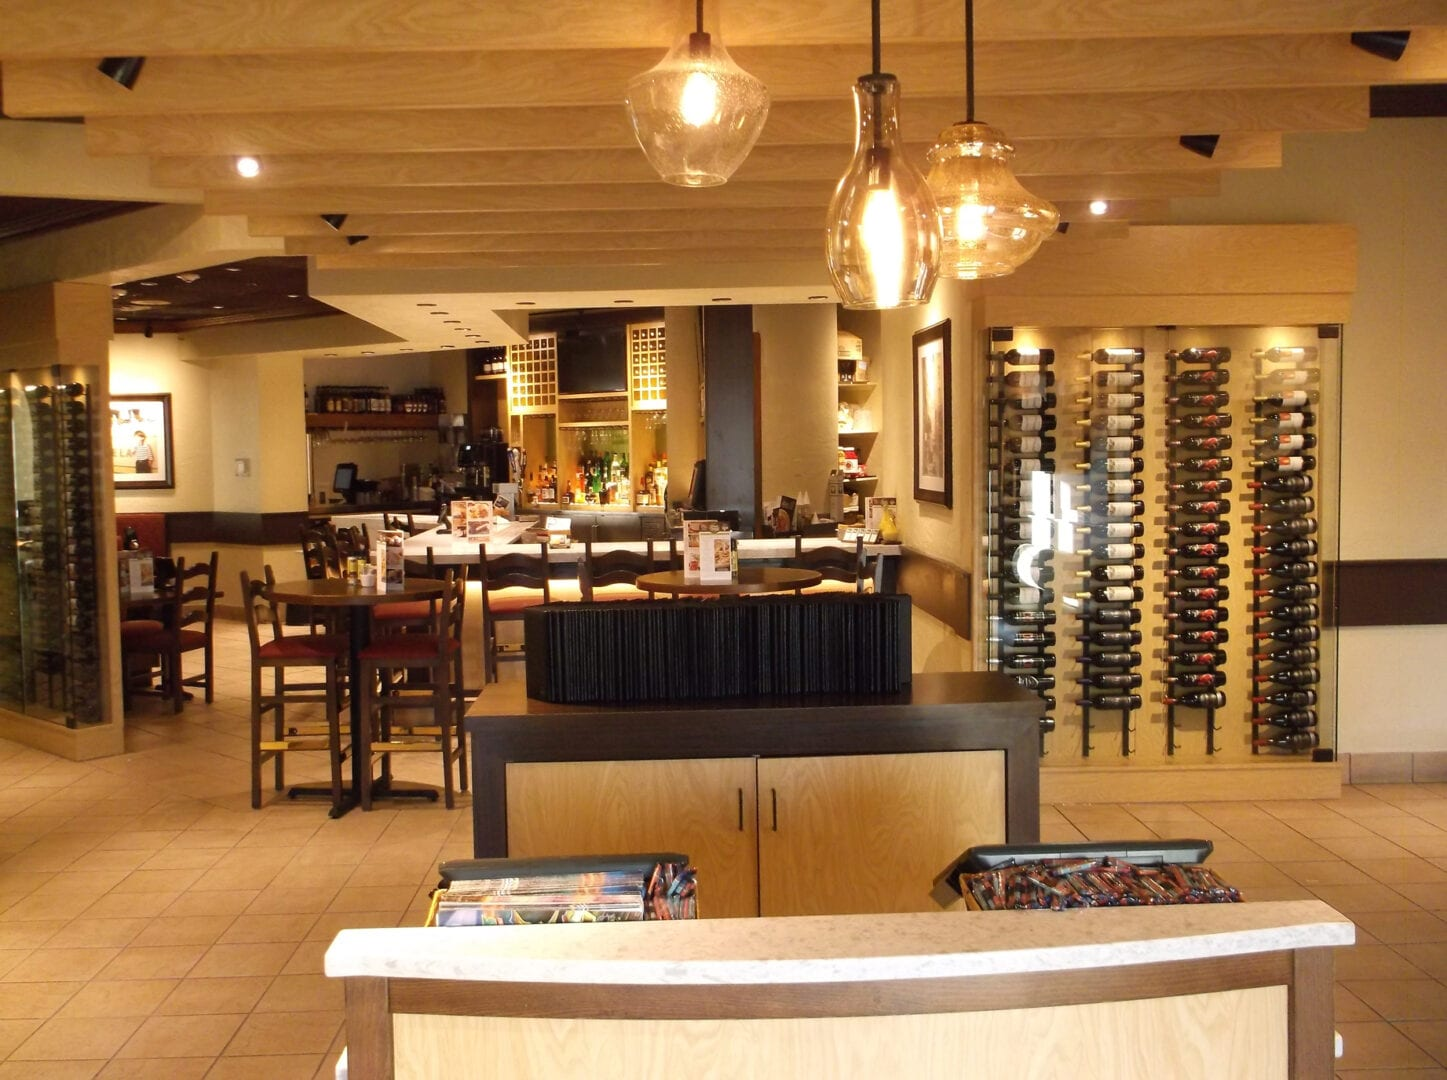 Olive Garden NJ - Belisle Construction Inc.